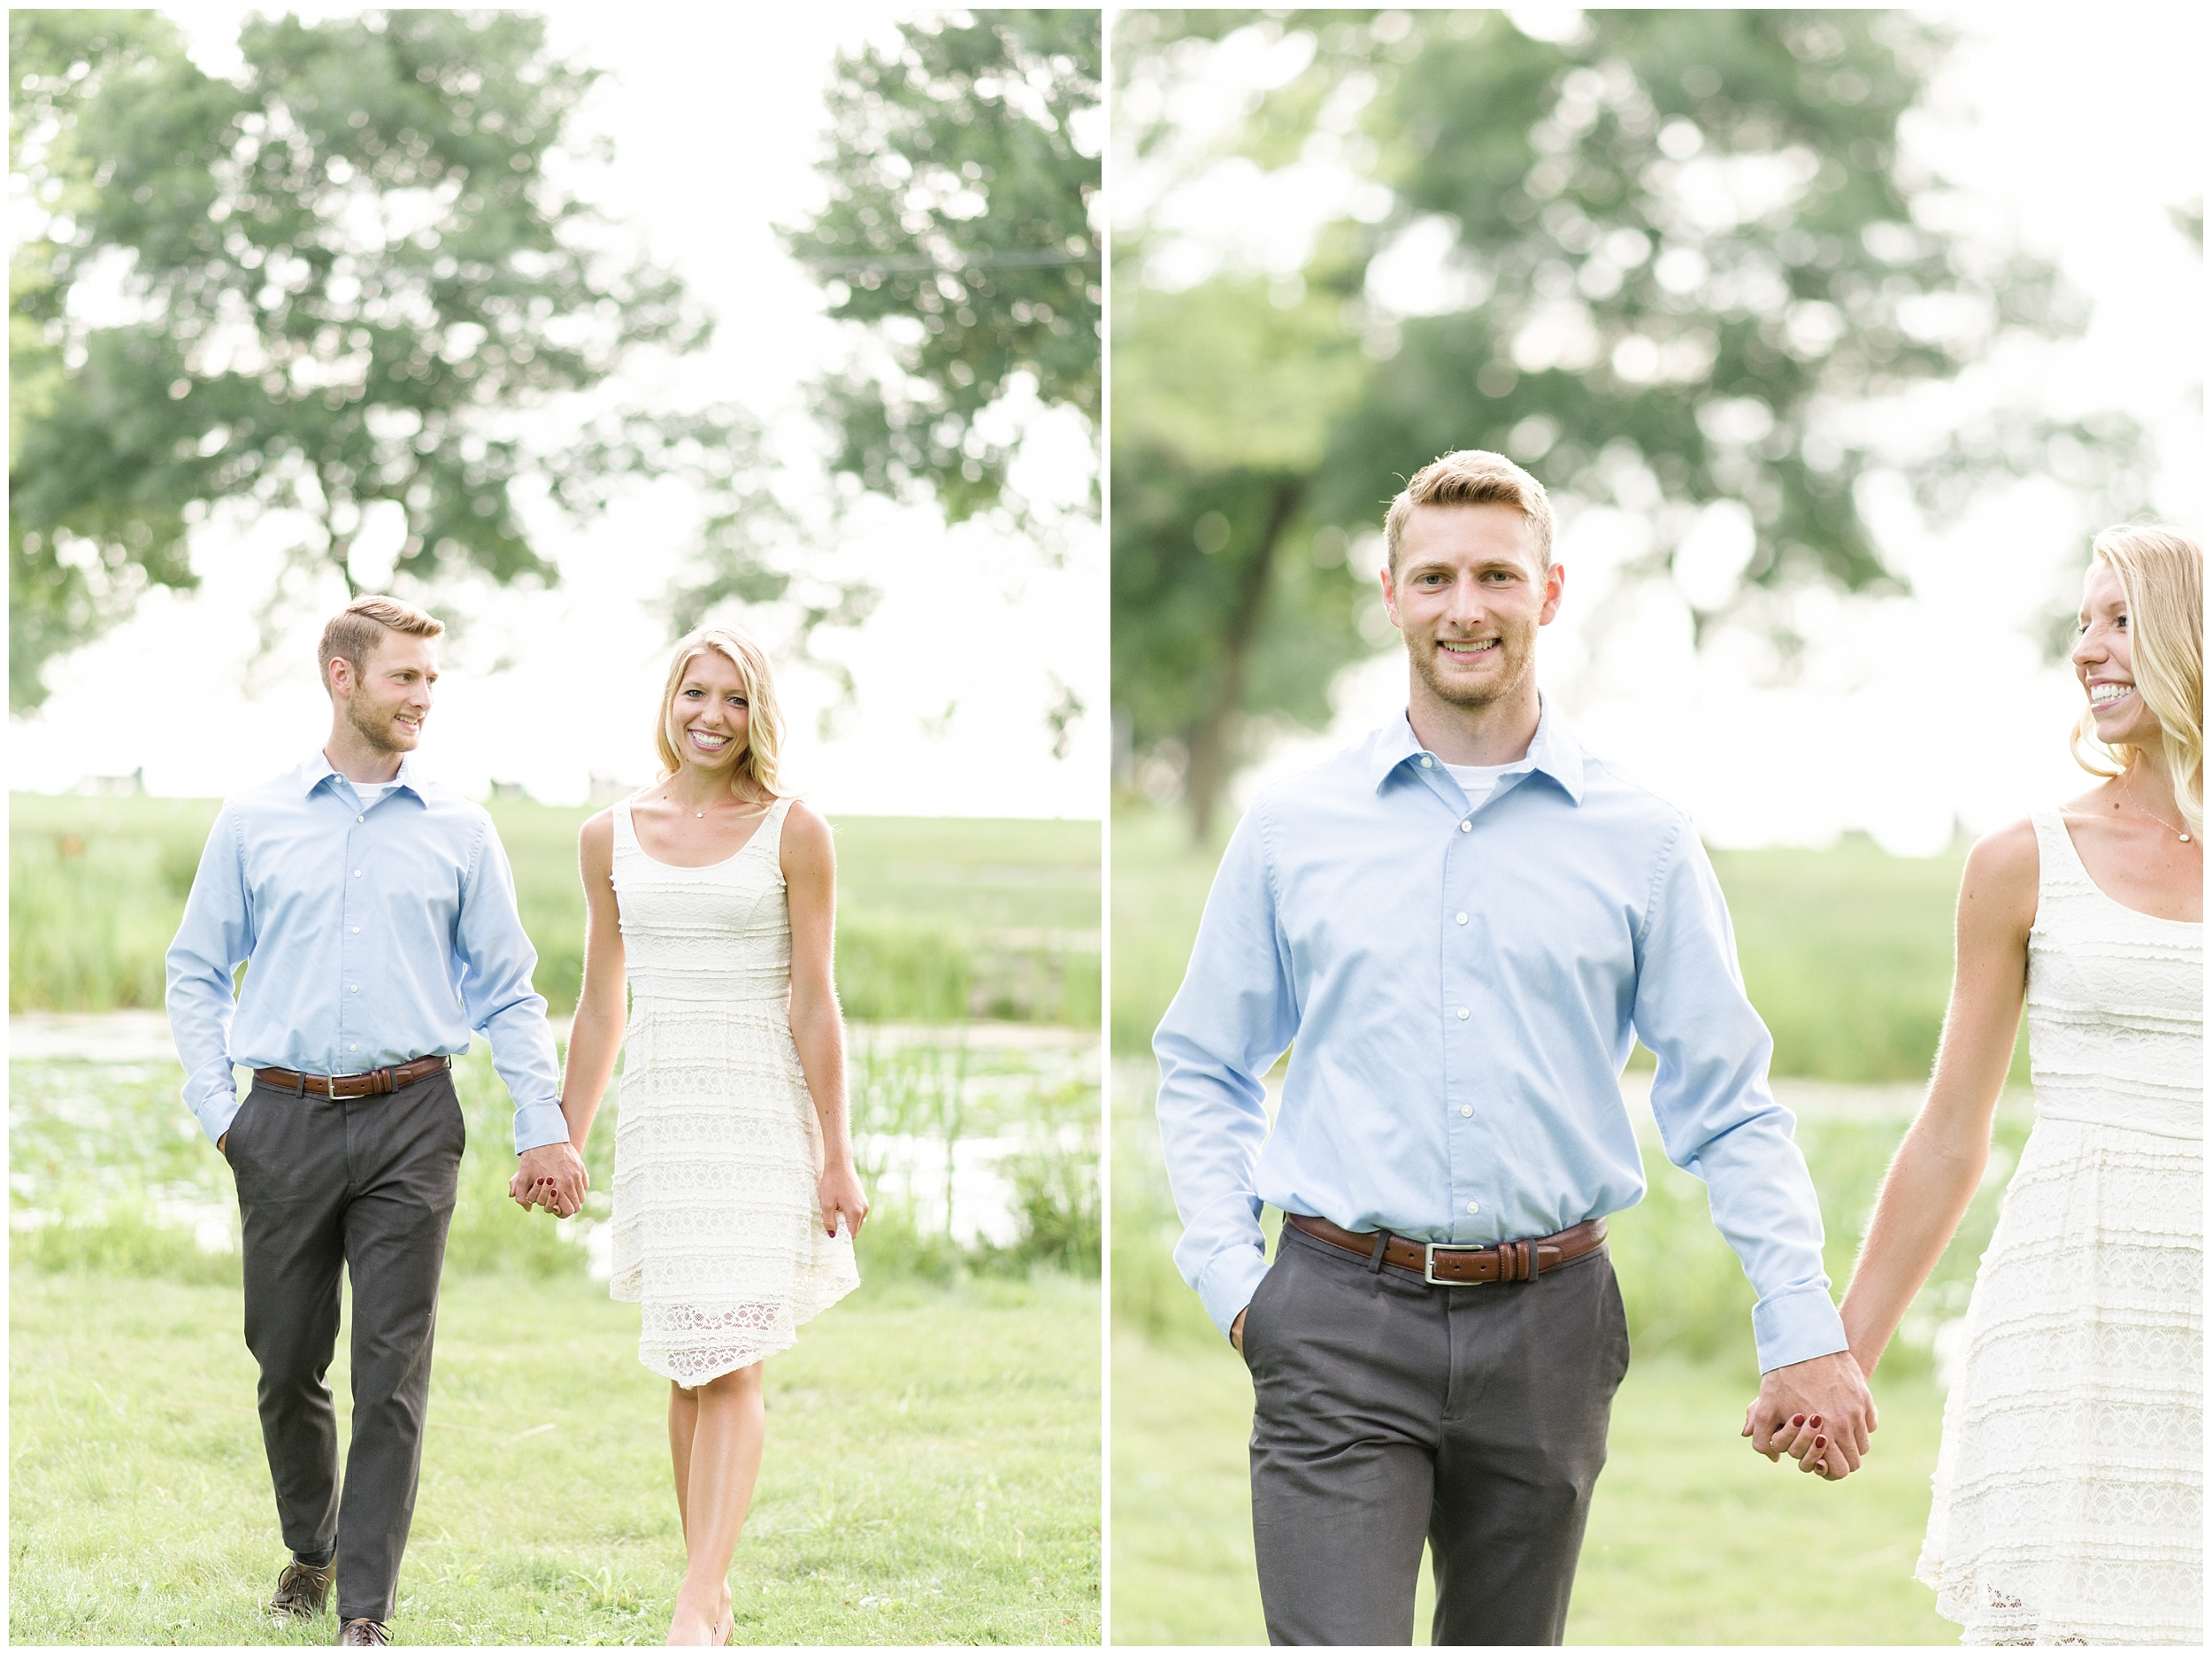 tenney-park-engagement-session-madison-wisconsin-bright-light-airy-wedding-photographer_0014.jpg